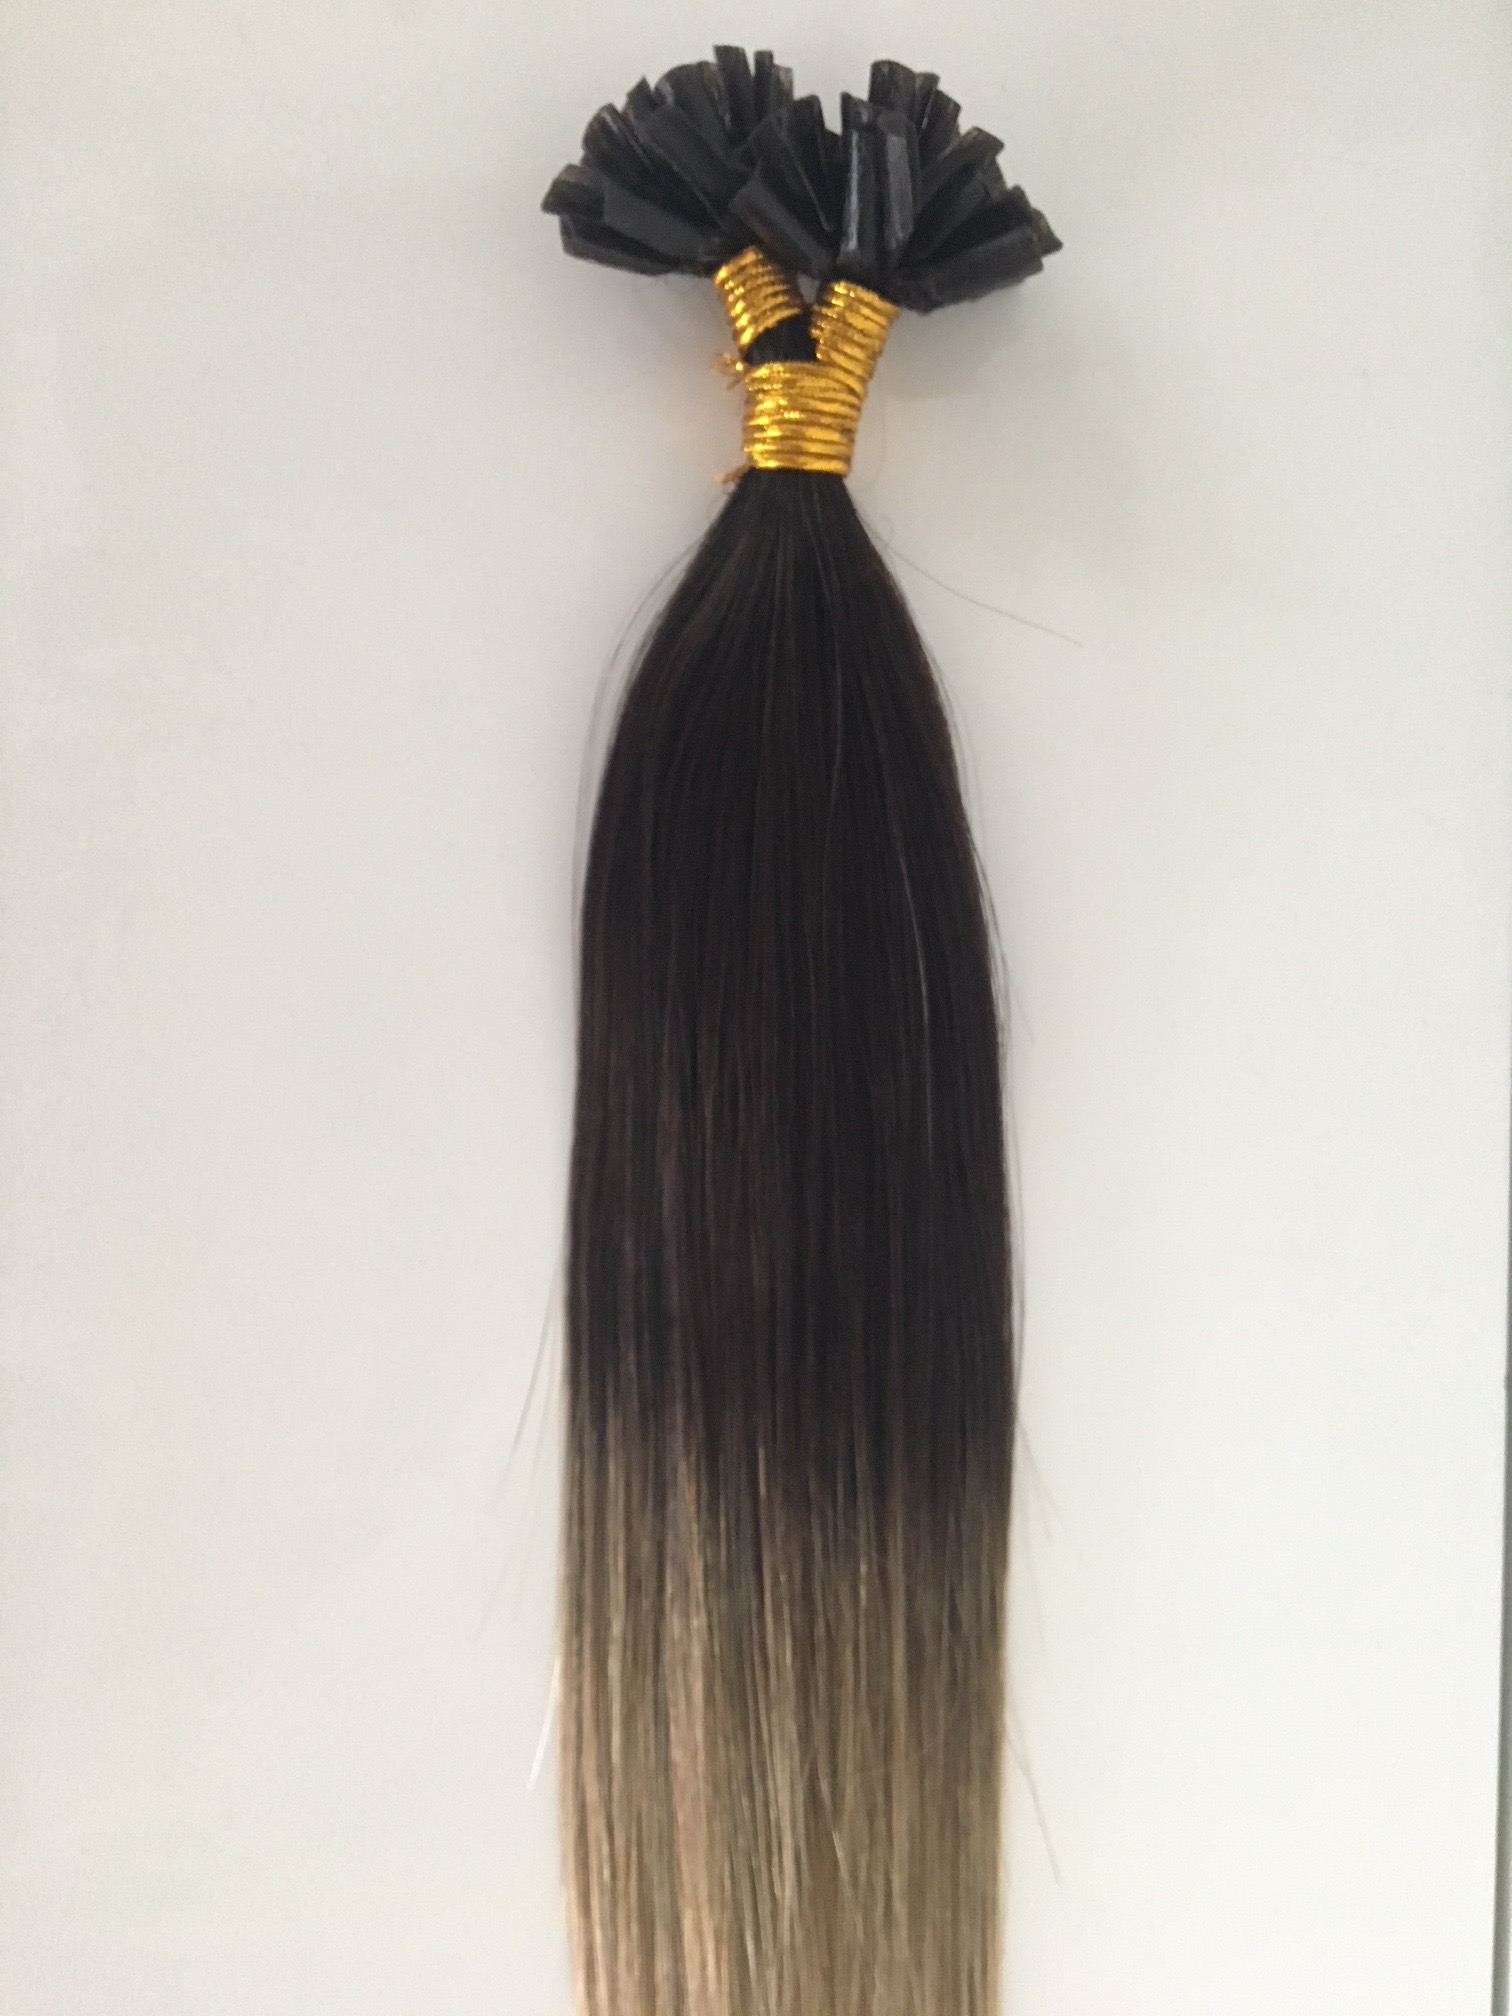 So Cap Hair Extensions For Sale Actual Store Deals